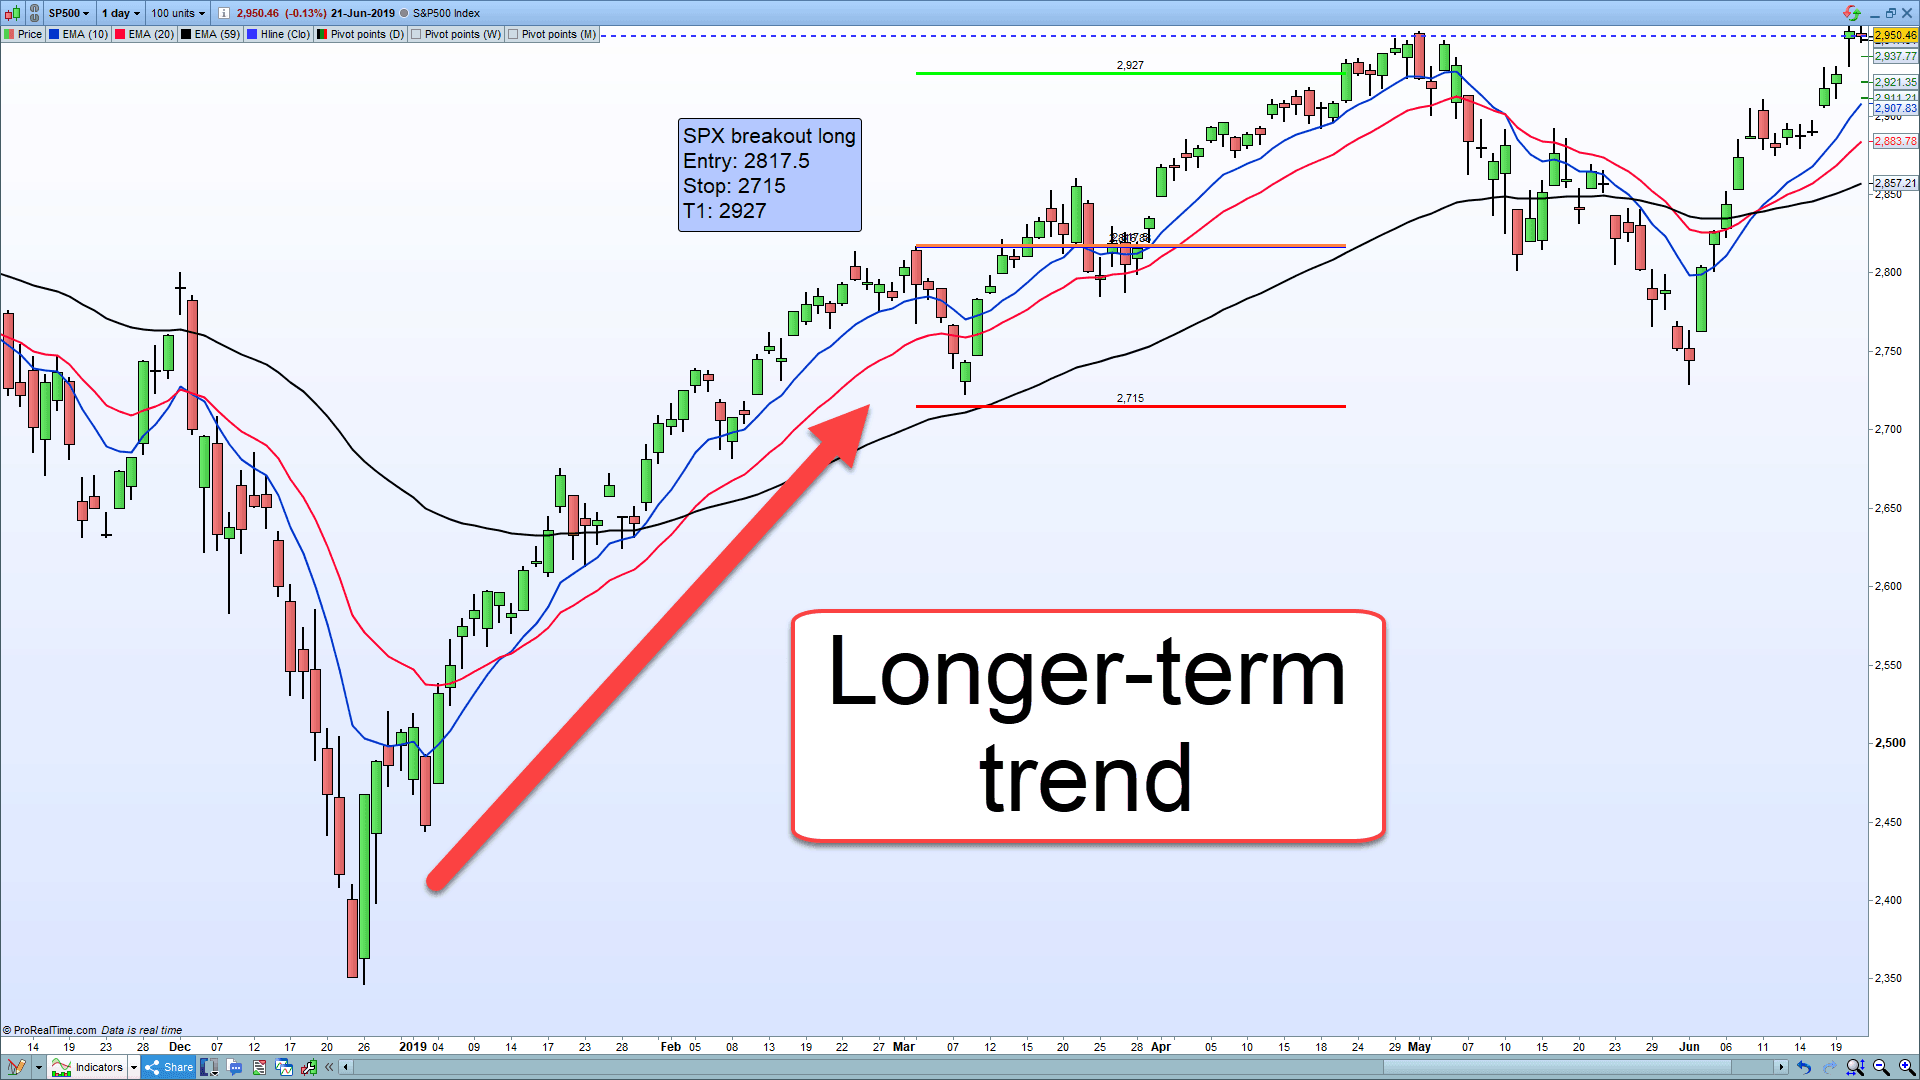 S&P500 breakout trade.